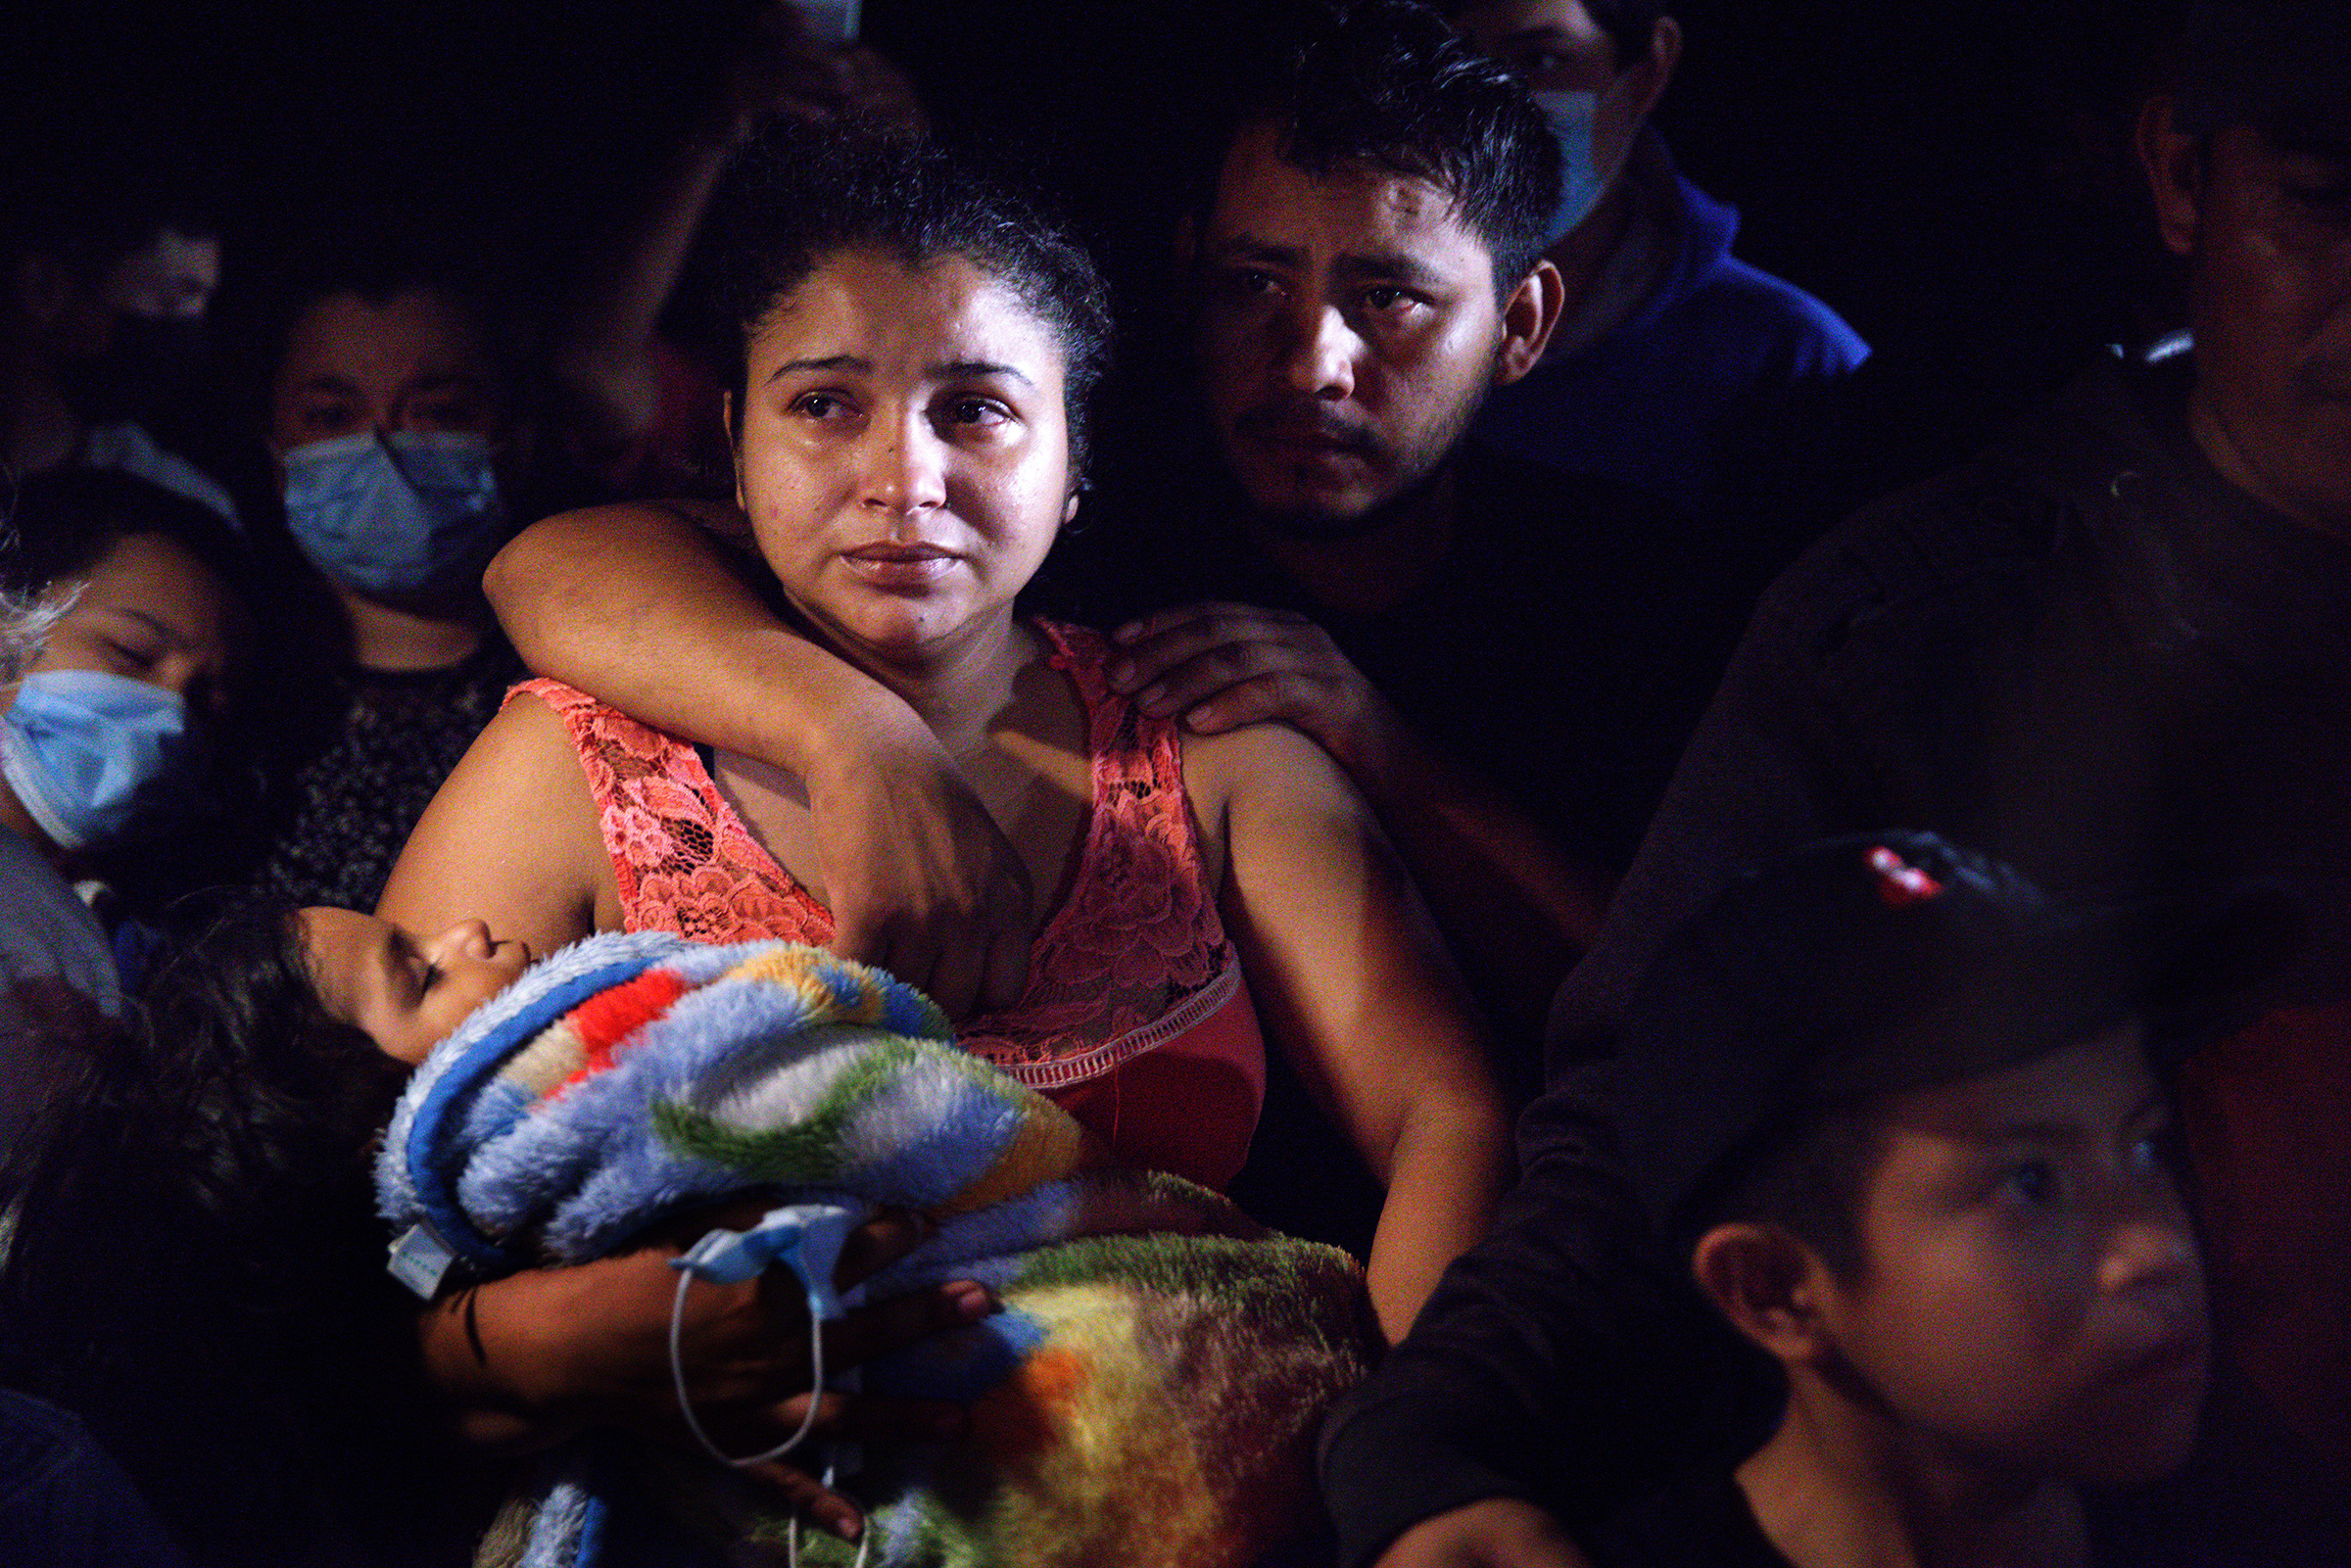 Honduran parents hold their sleeping boy after crossing the Rio Grande from Mexico in Roma, Texas, on April 15, 2021.